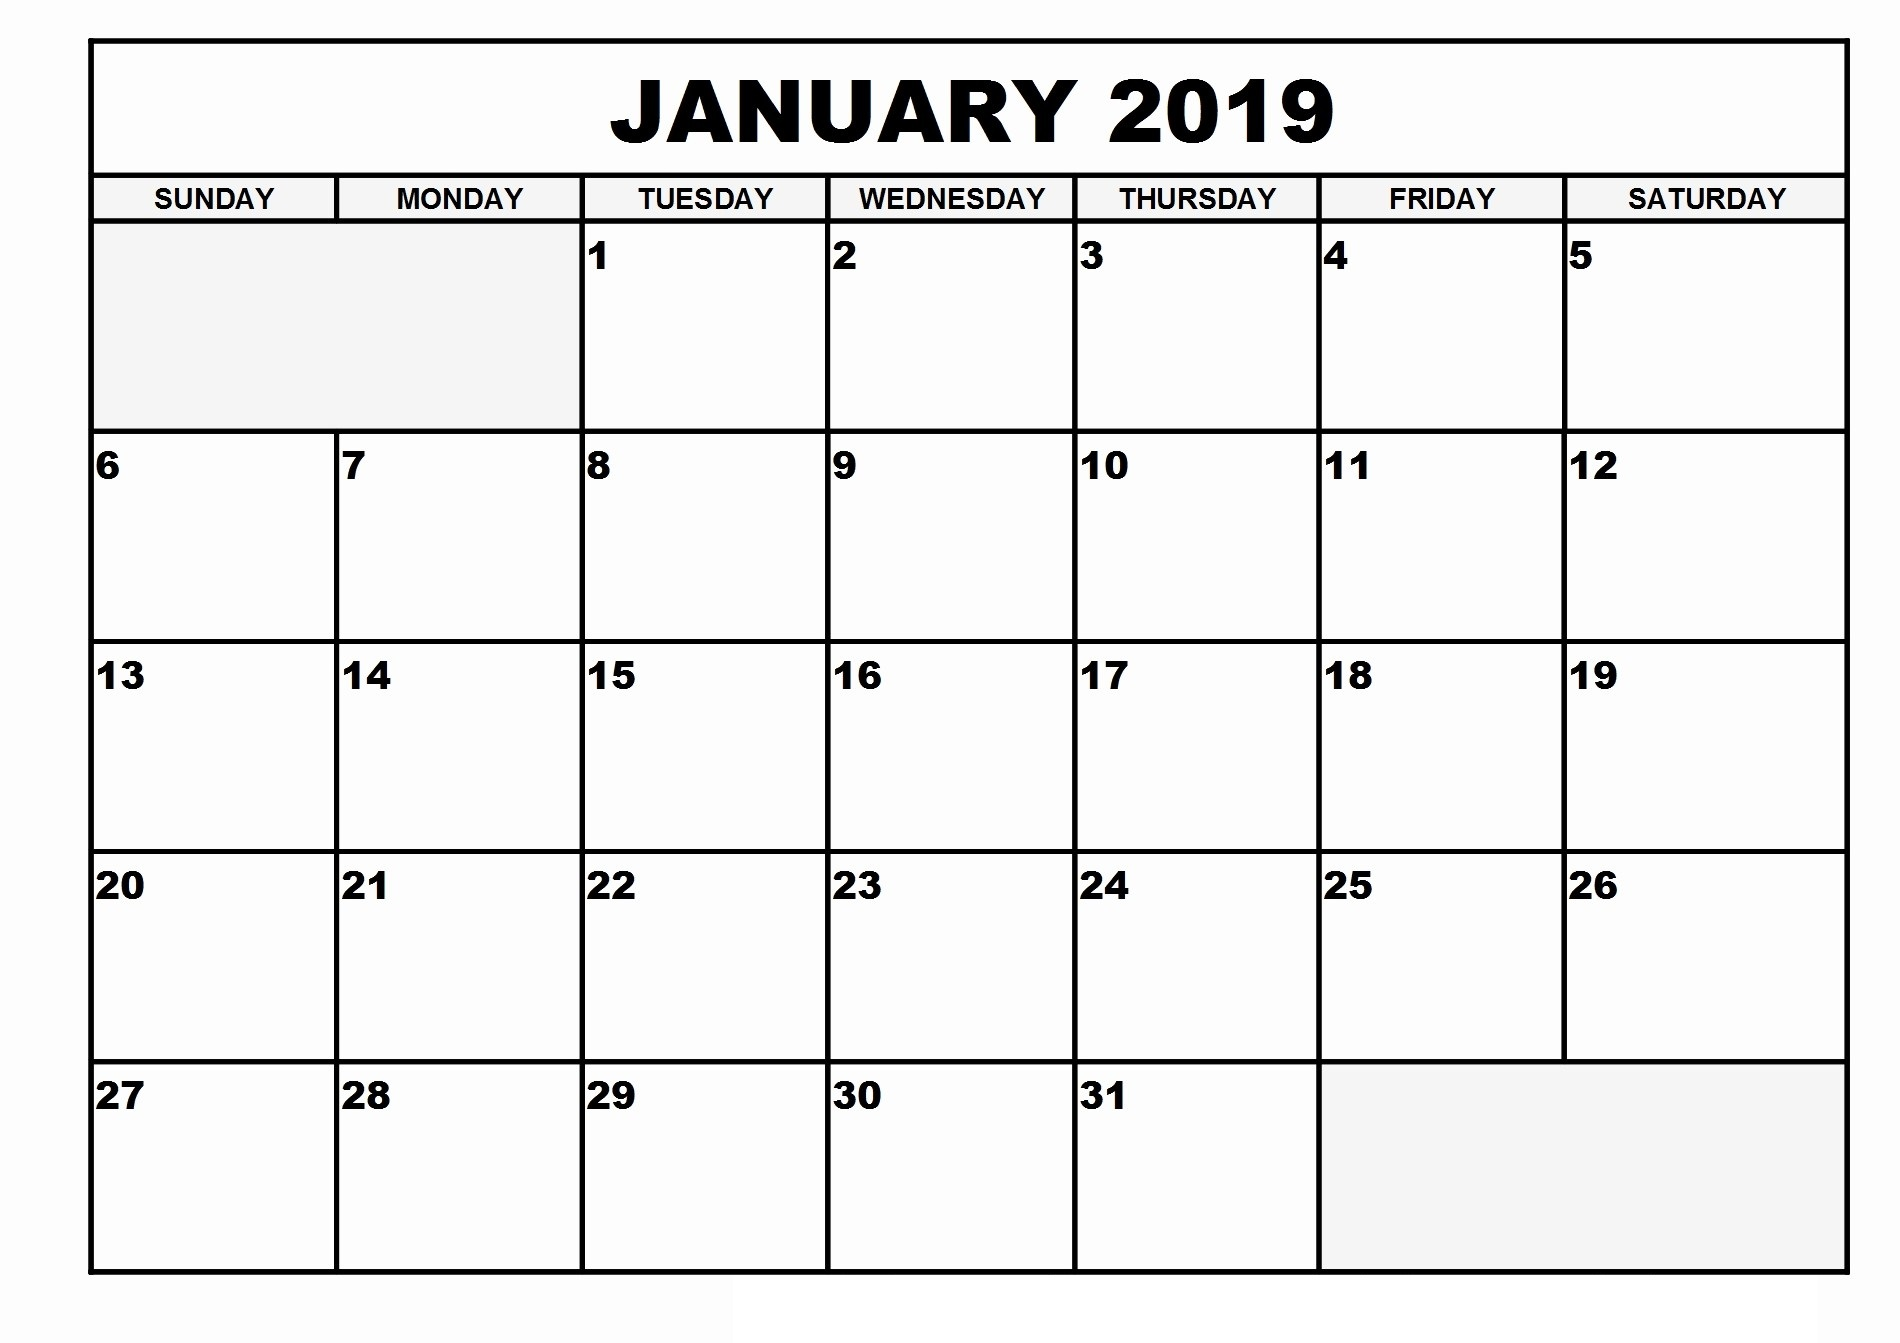 January Calendar 2019 Holidays For word